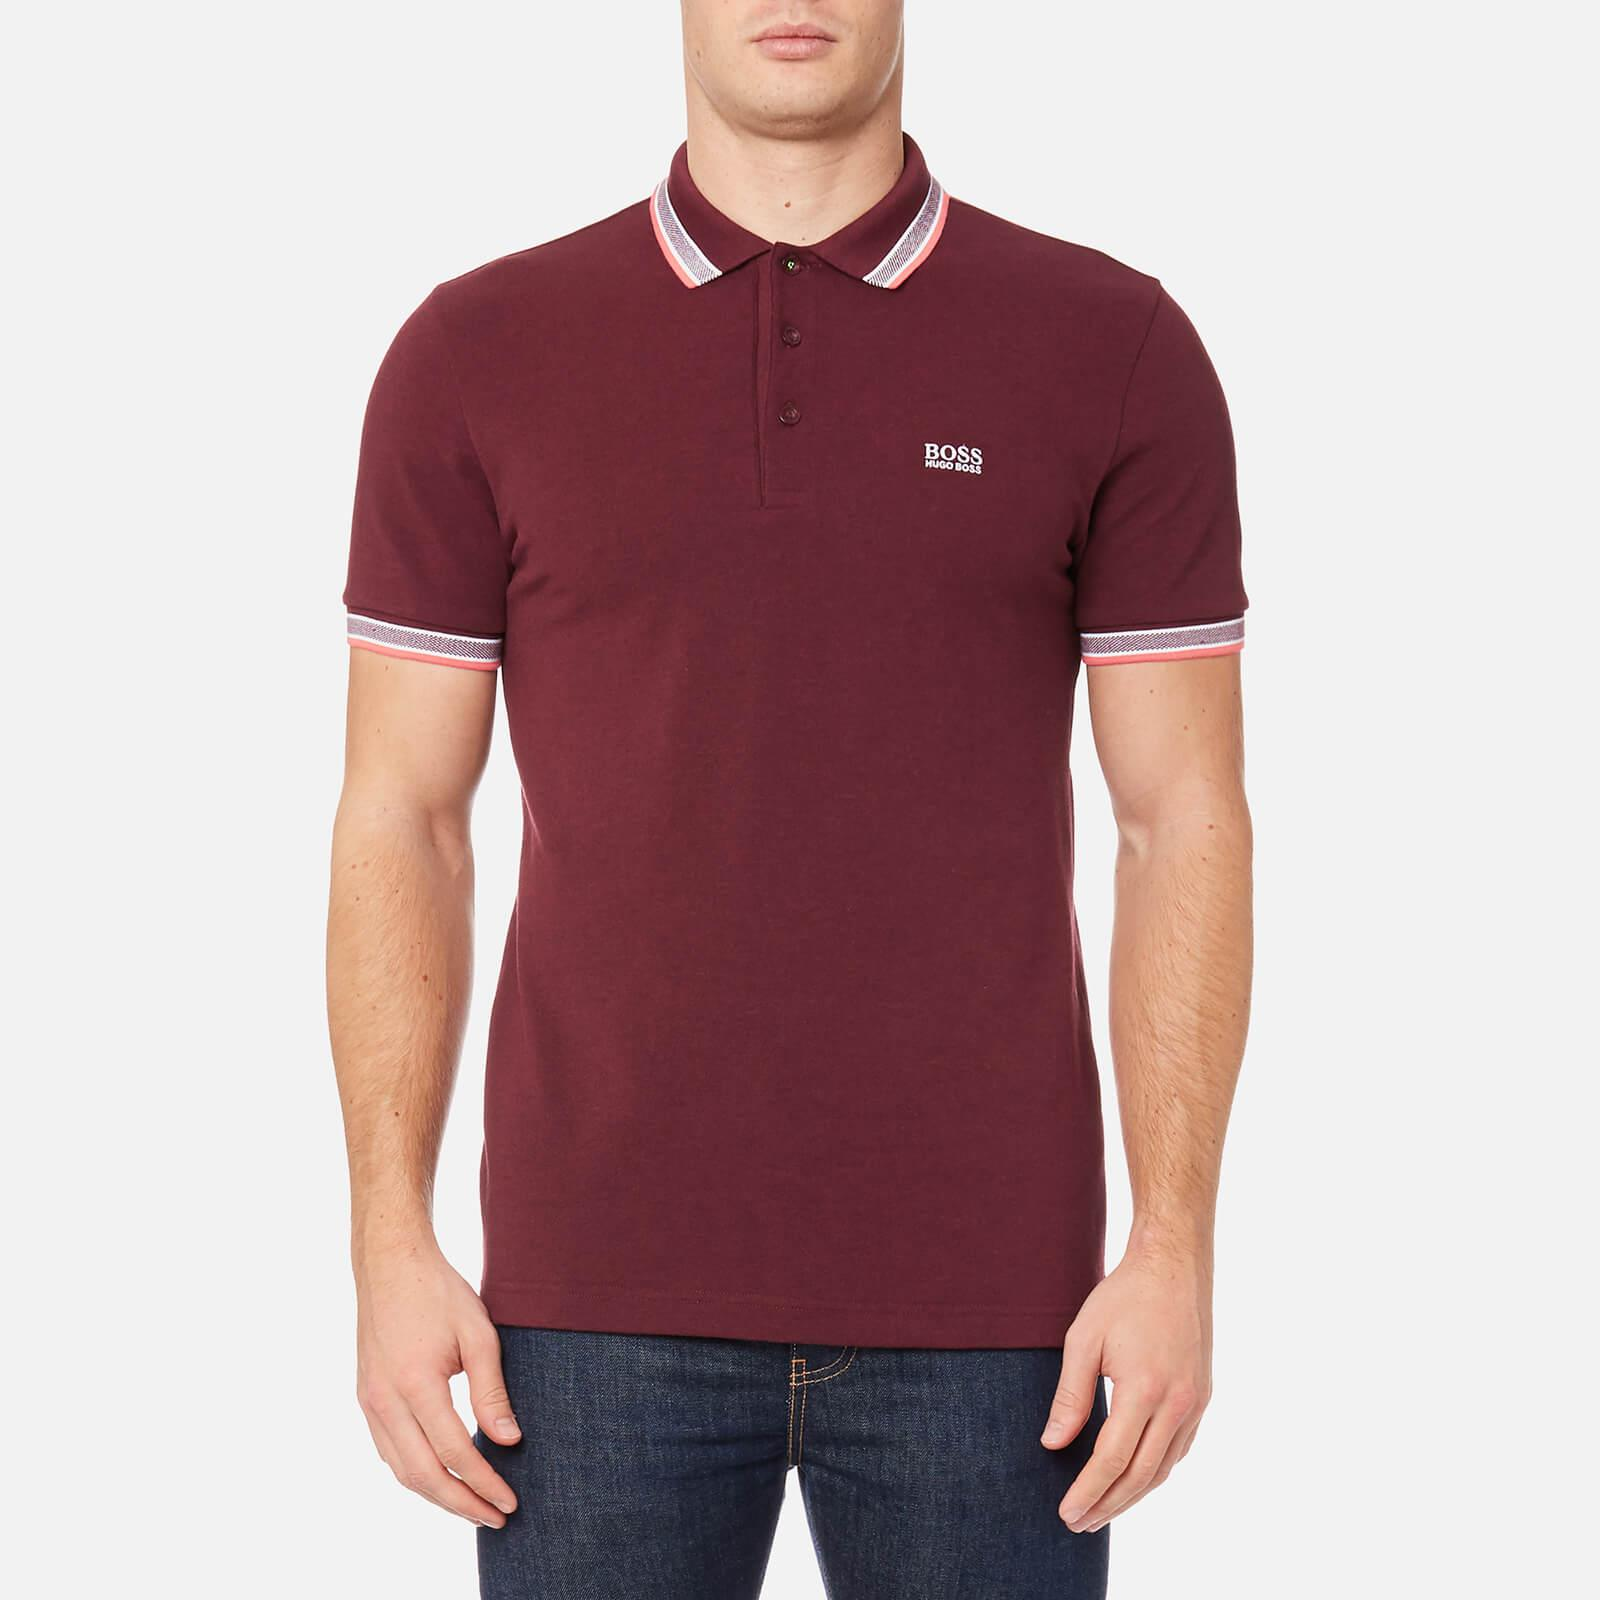 lyst boss green paddy polo shirt in red for men. Black Bedroom Furniture Sets. Home Design Ideas